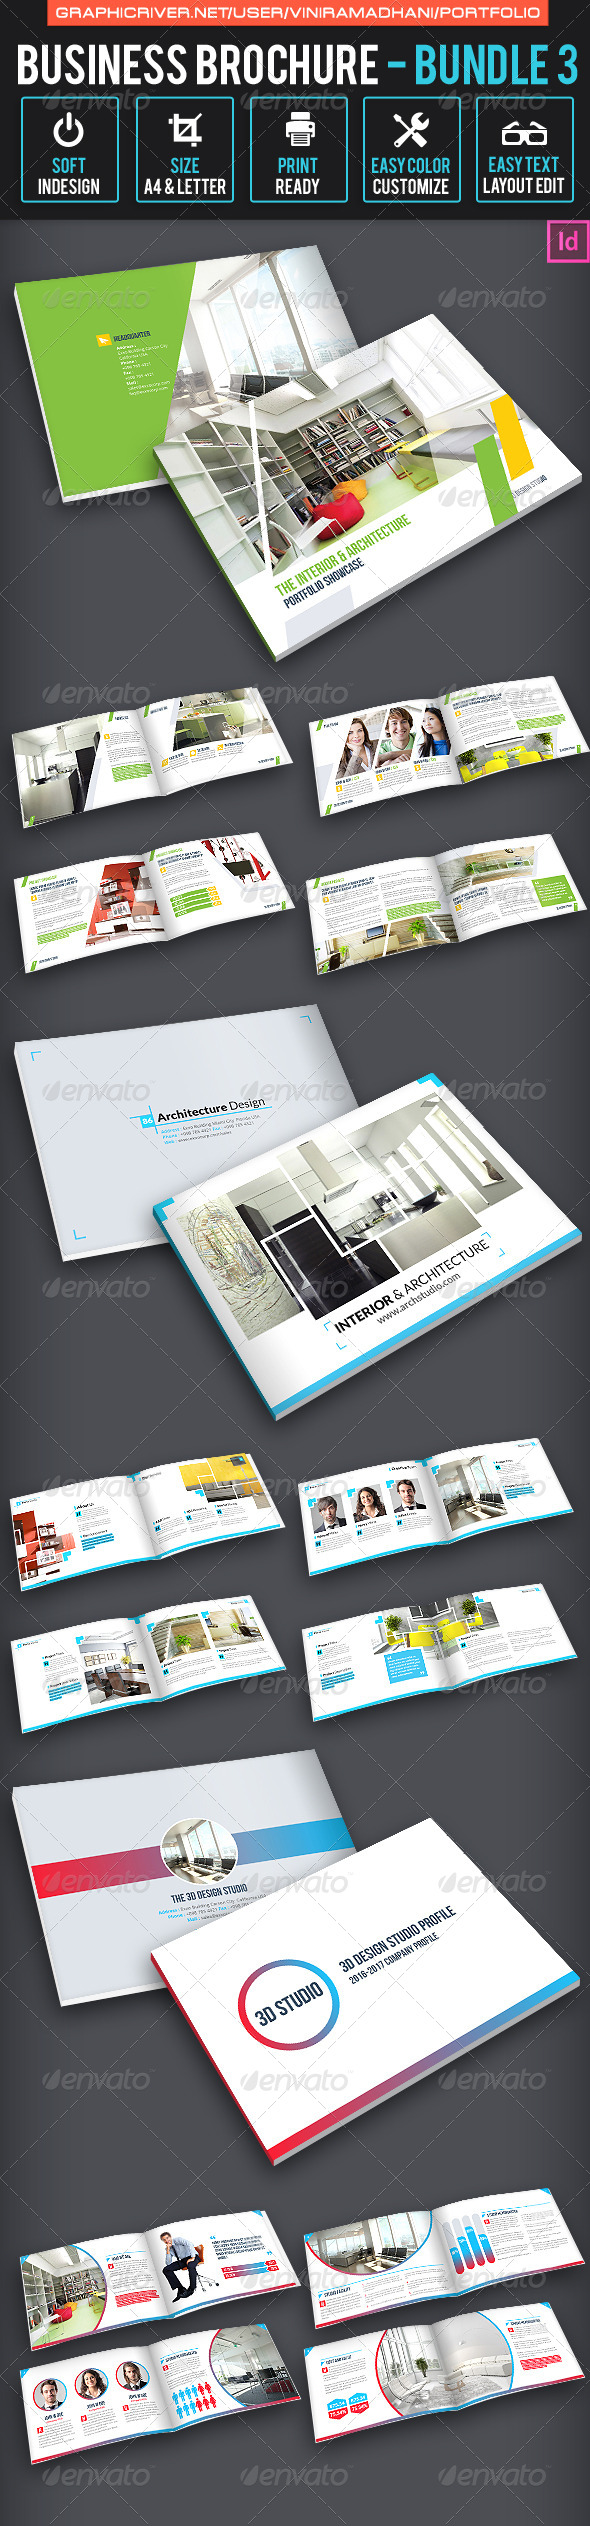 GraphicRiver Portfolio Brochure bundle 1 7325264